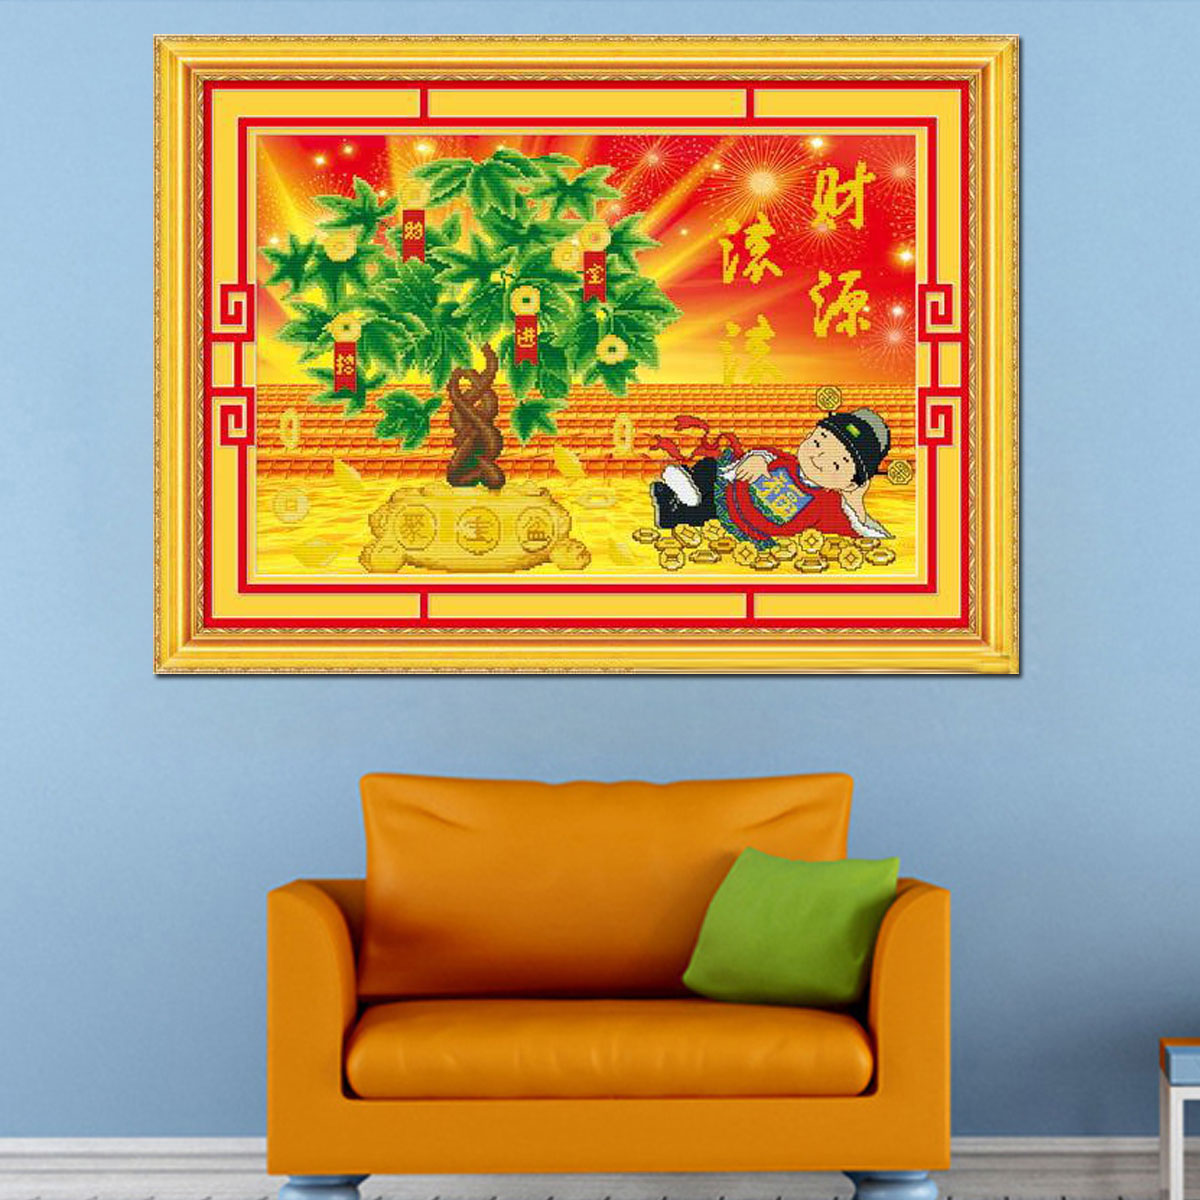 Dimensional painting 3d5d stitch shipping new living room large painting business is booming extra cash zhaocaijinbao